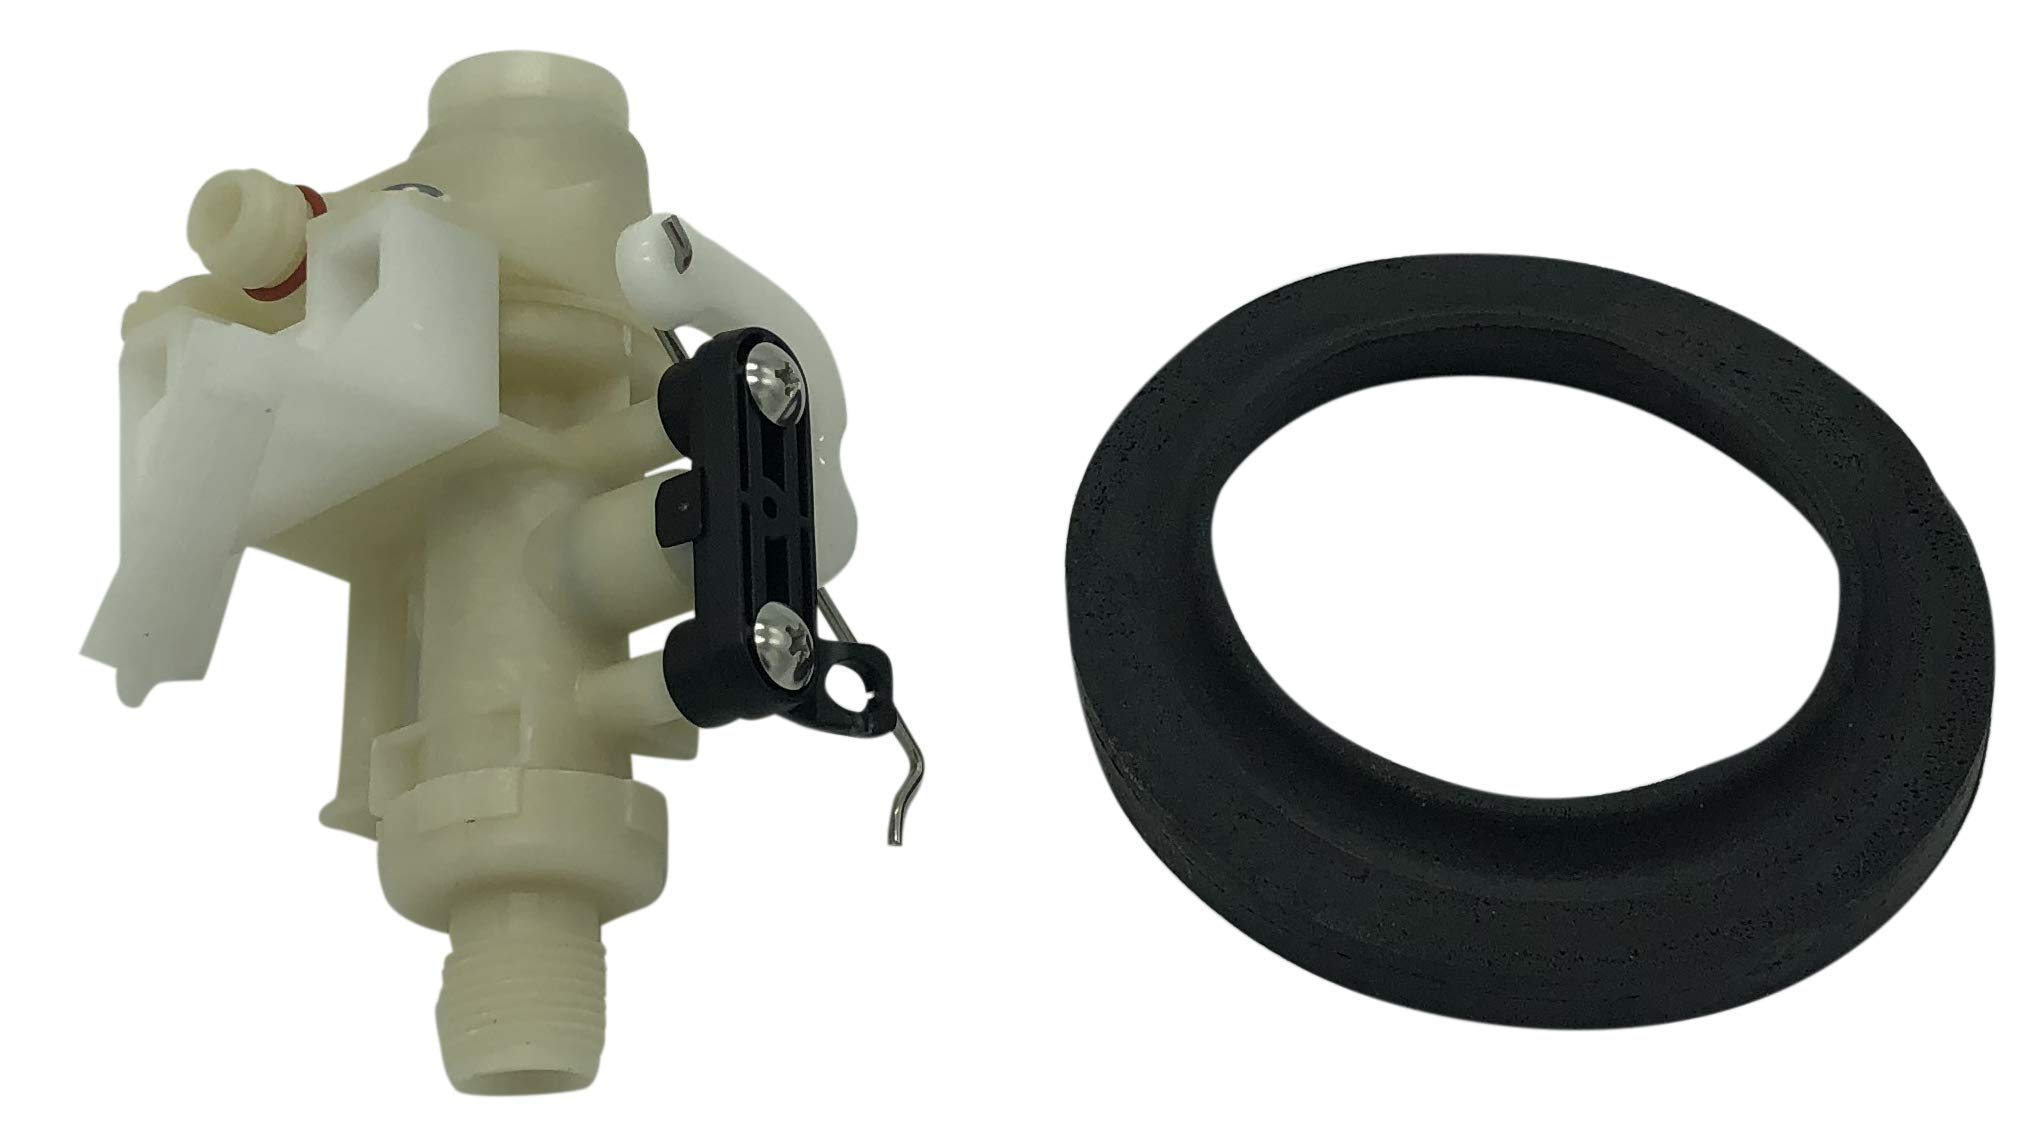 Beech Lane Upgraded Toilet Water Module Assembly 31705 for Thetford Magic V Toilets, Compare to Thetford 31705 Valve, Leak Resistant, Increased Lifespan, High Performance in Freezing Conditions